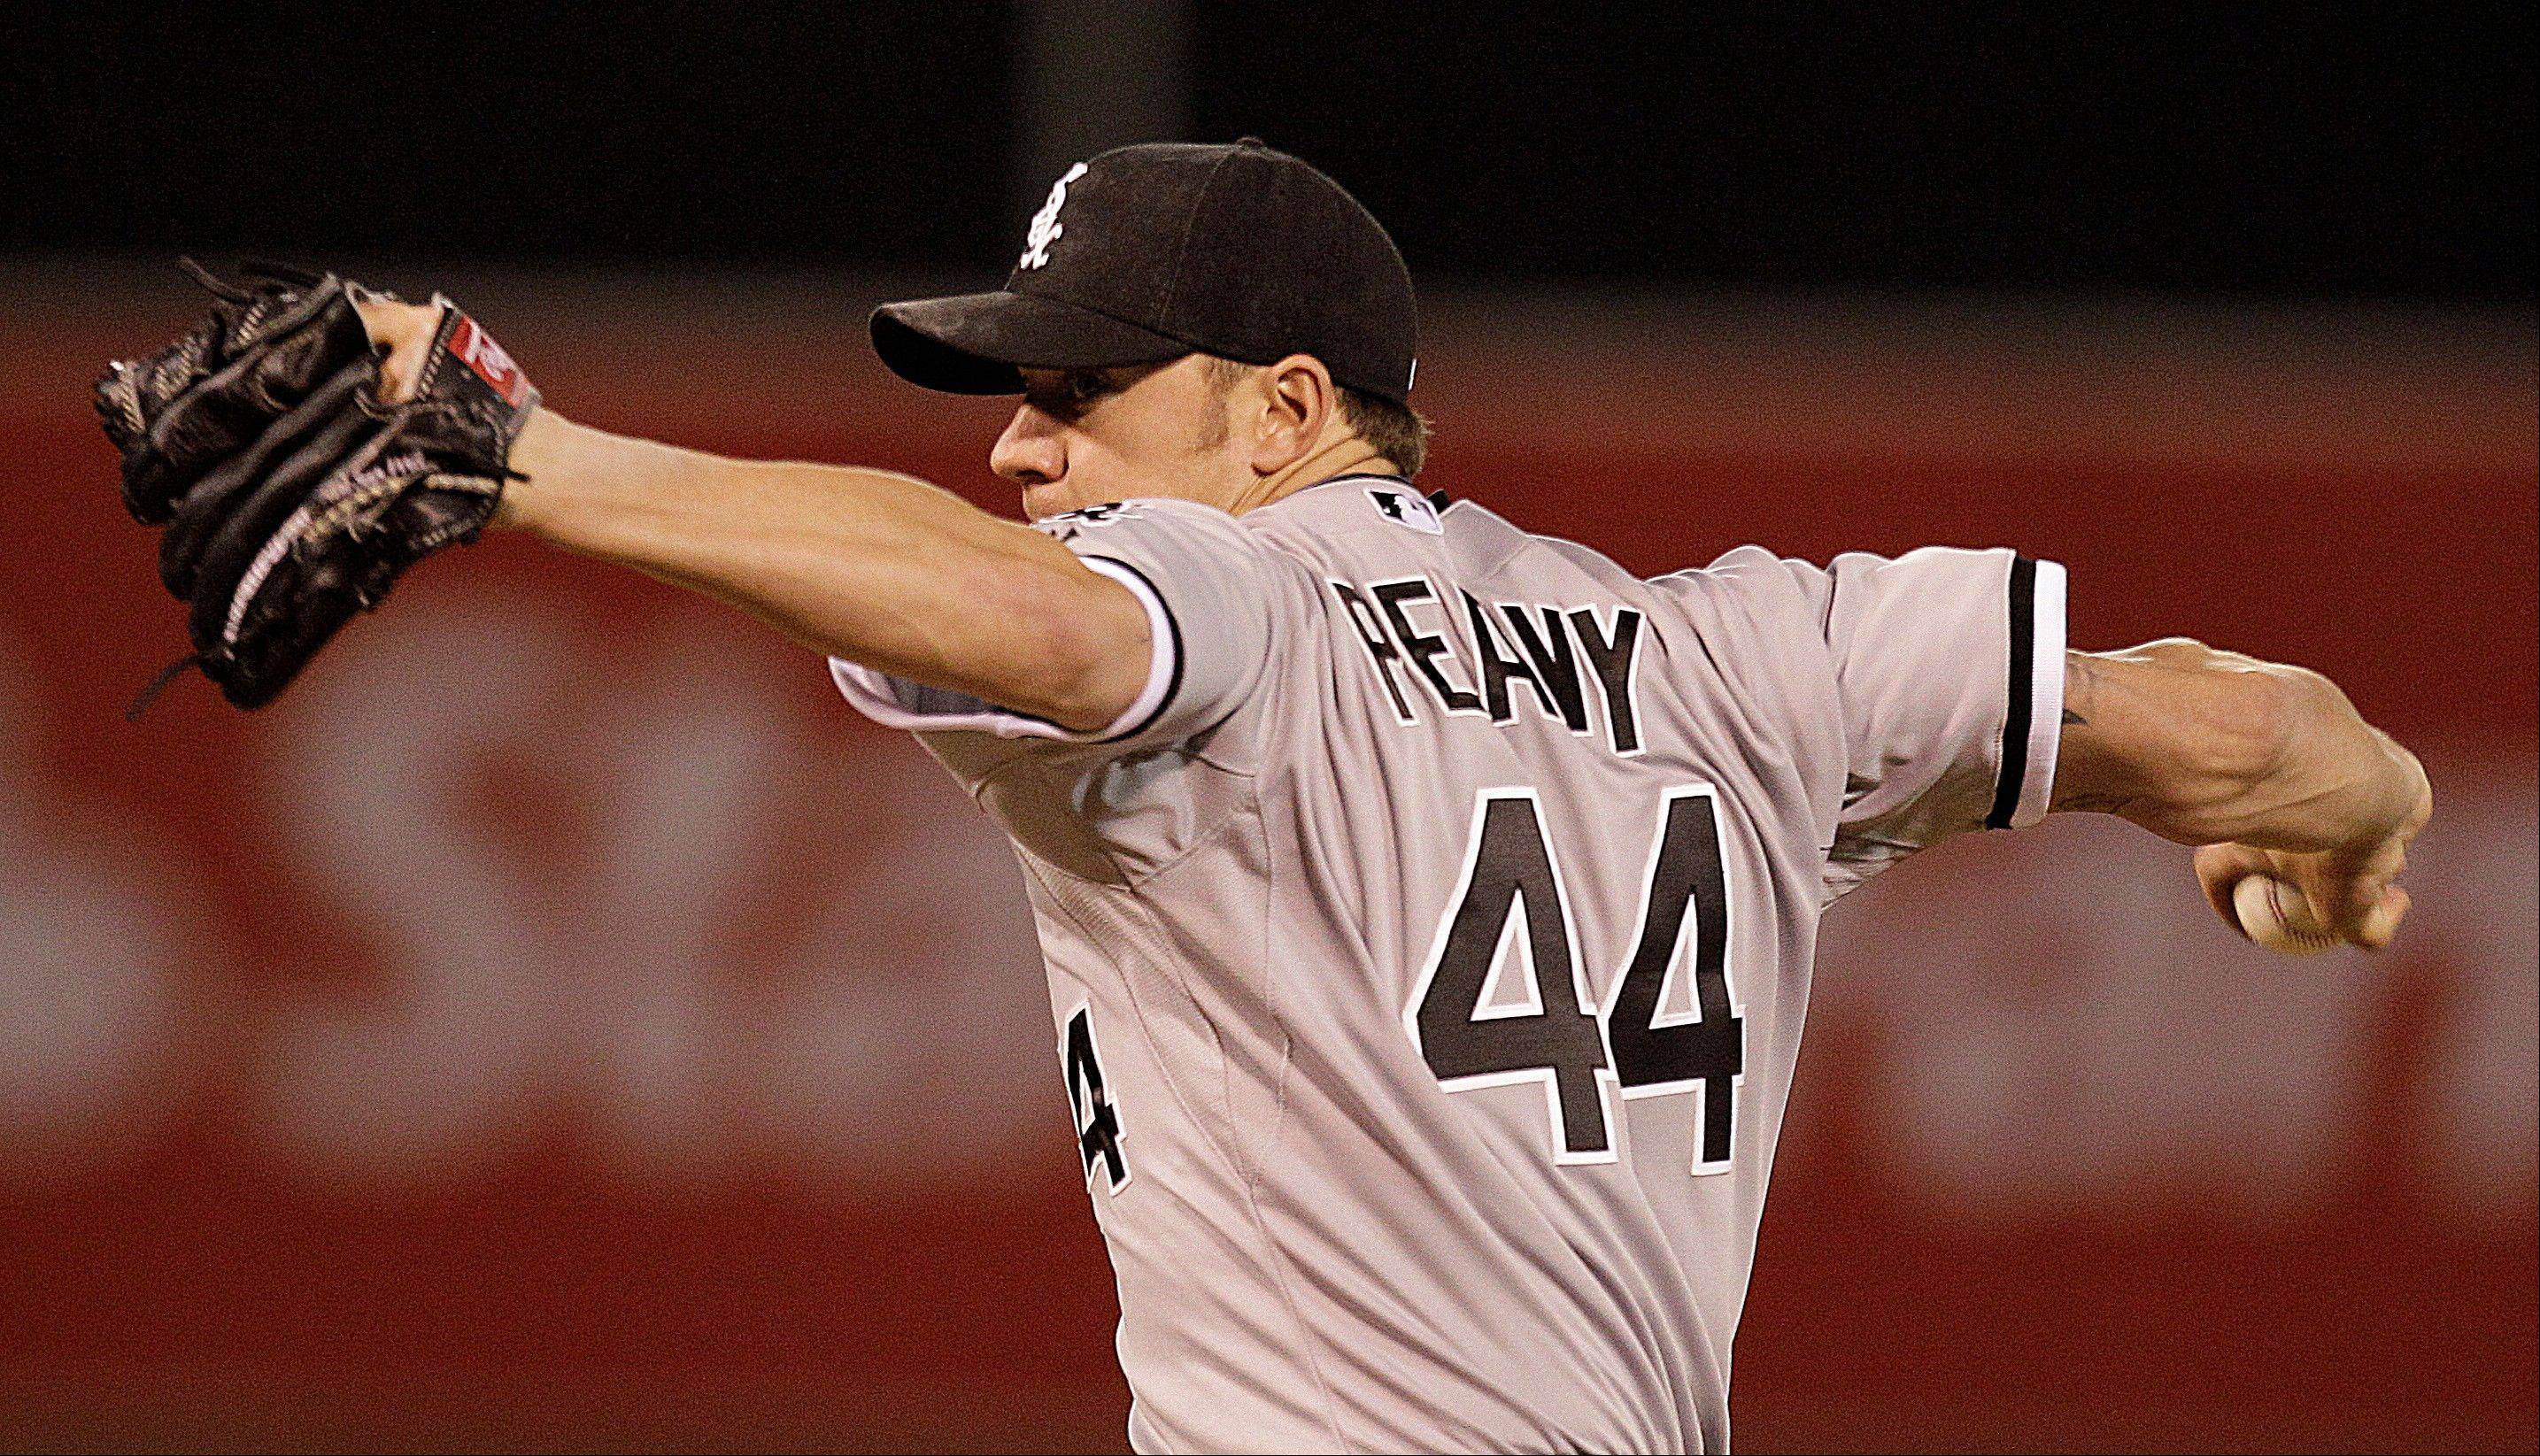 Chicago White Sox pitcher Jake Peavy works against the Oakland Athletics in the ninth inning of a baseball game Monday, April 23 in Oakland, Calif. Peavy pitched a three hit shutout, Chicago won the game, 4-0.